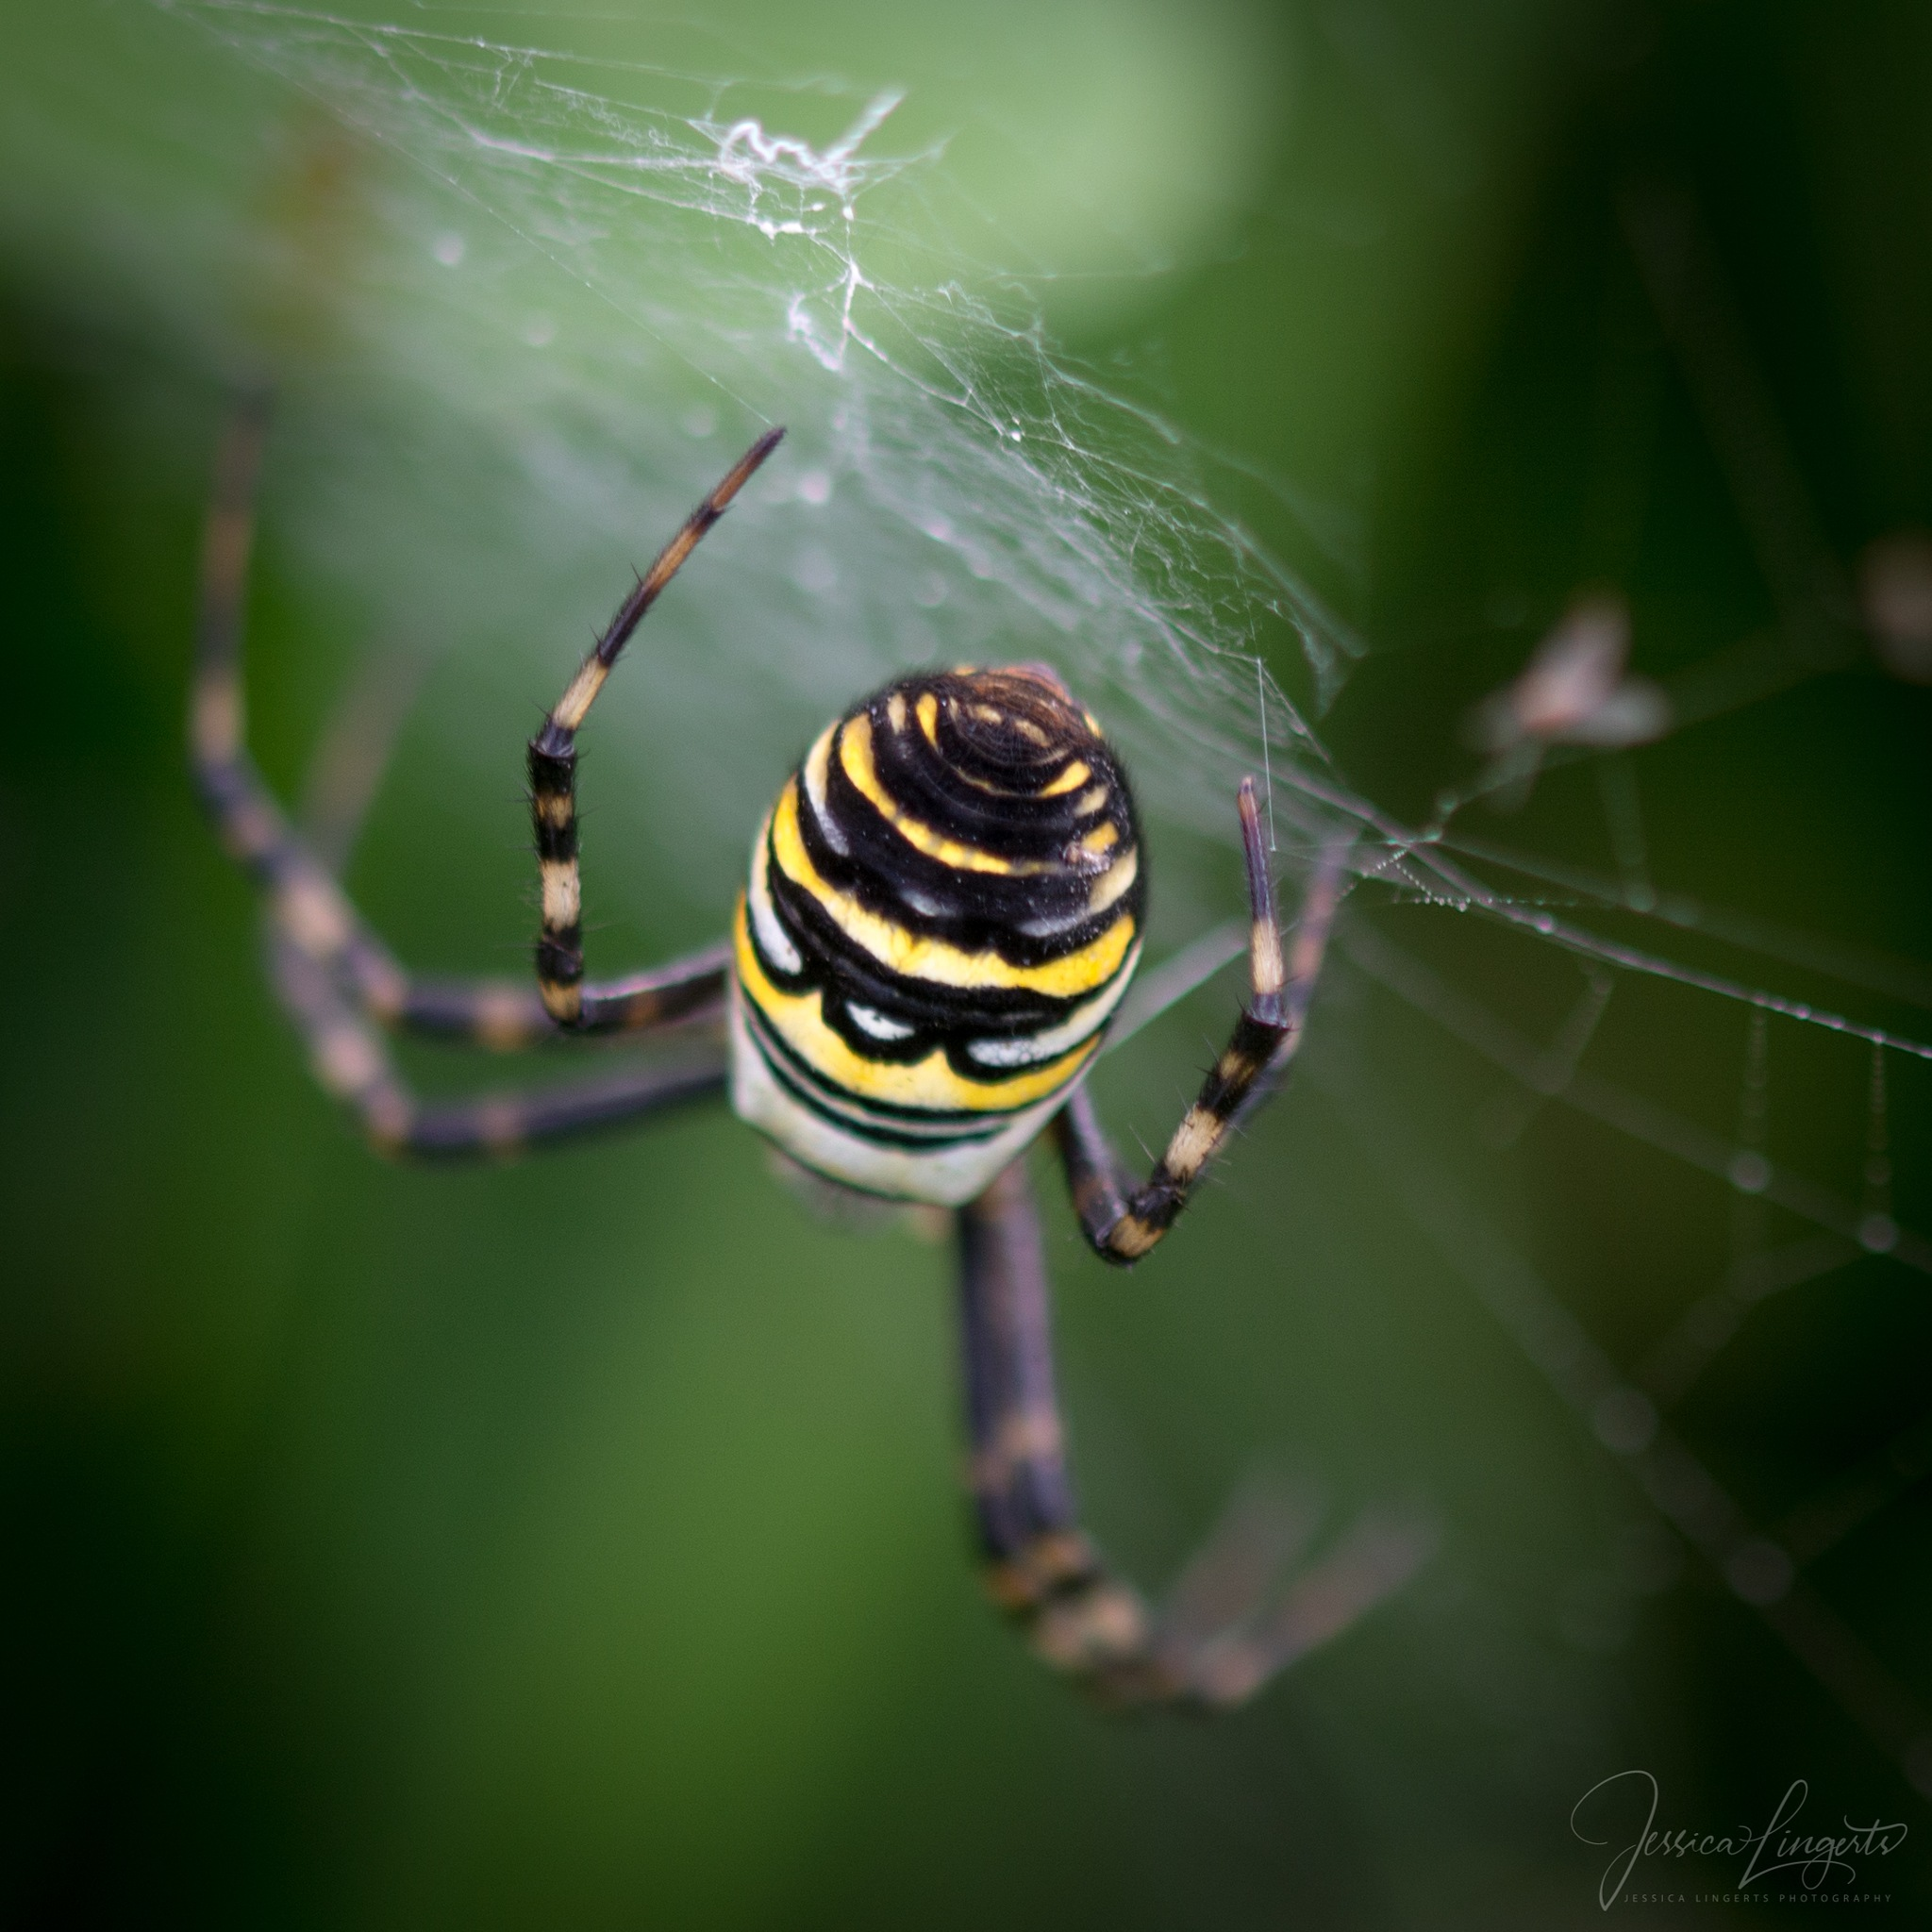 Wasp spider by Jessica Lingerts